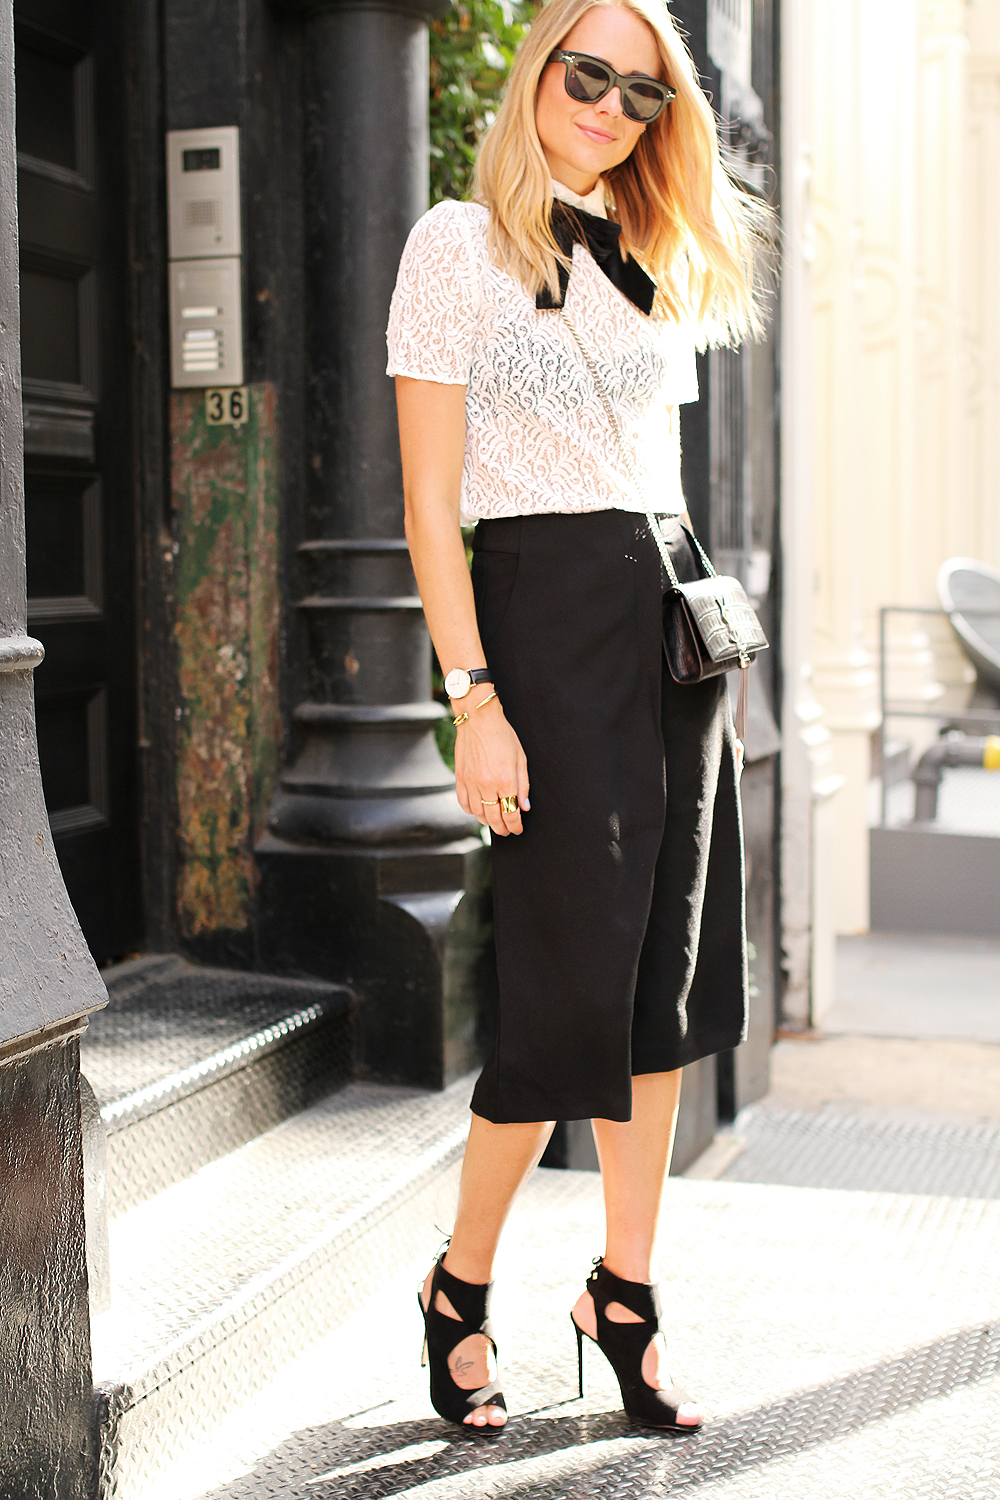 fashion-jackson-the-kooples-lace-top-cameo-the-label-culottes-black-aquazzura-sexy-thing-heels-similar-ysl-crossbody-celine-black-sunglasses